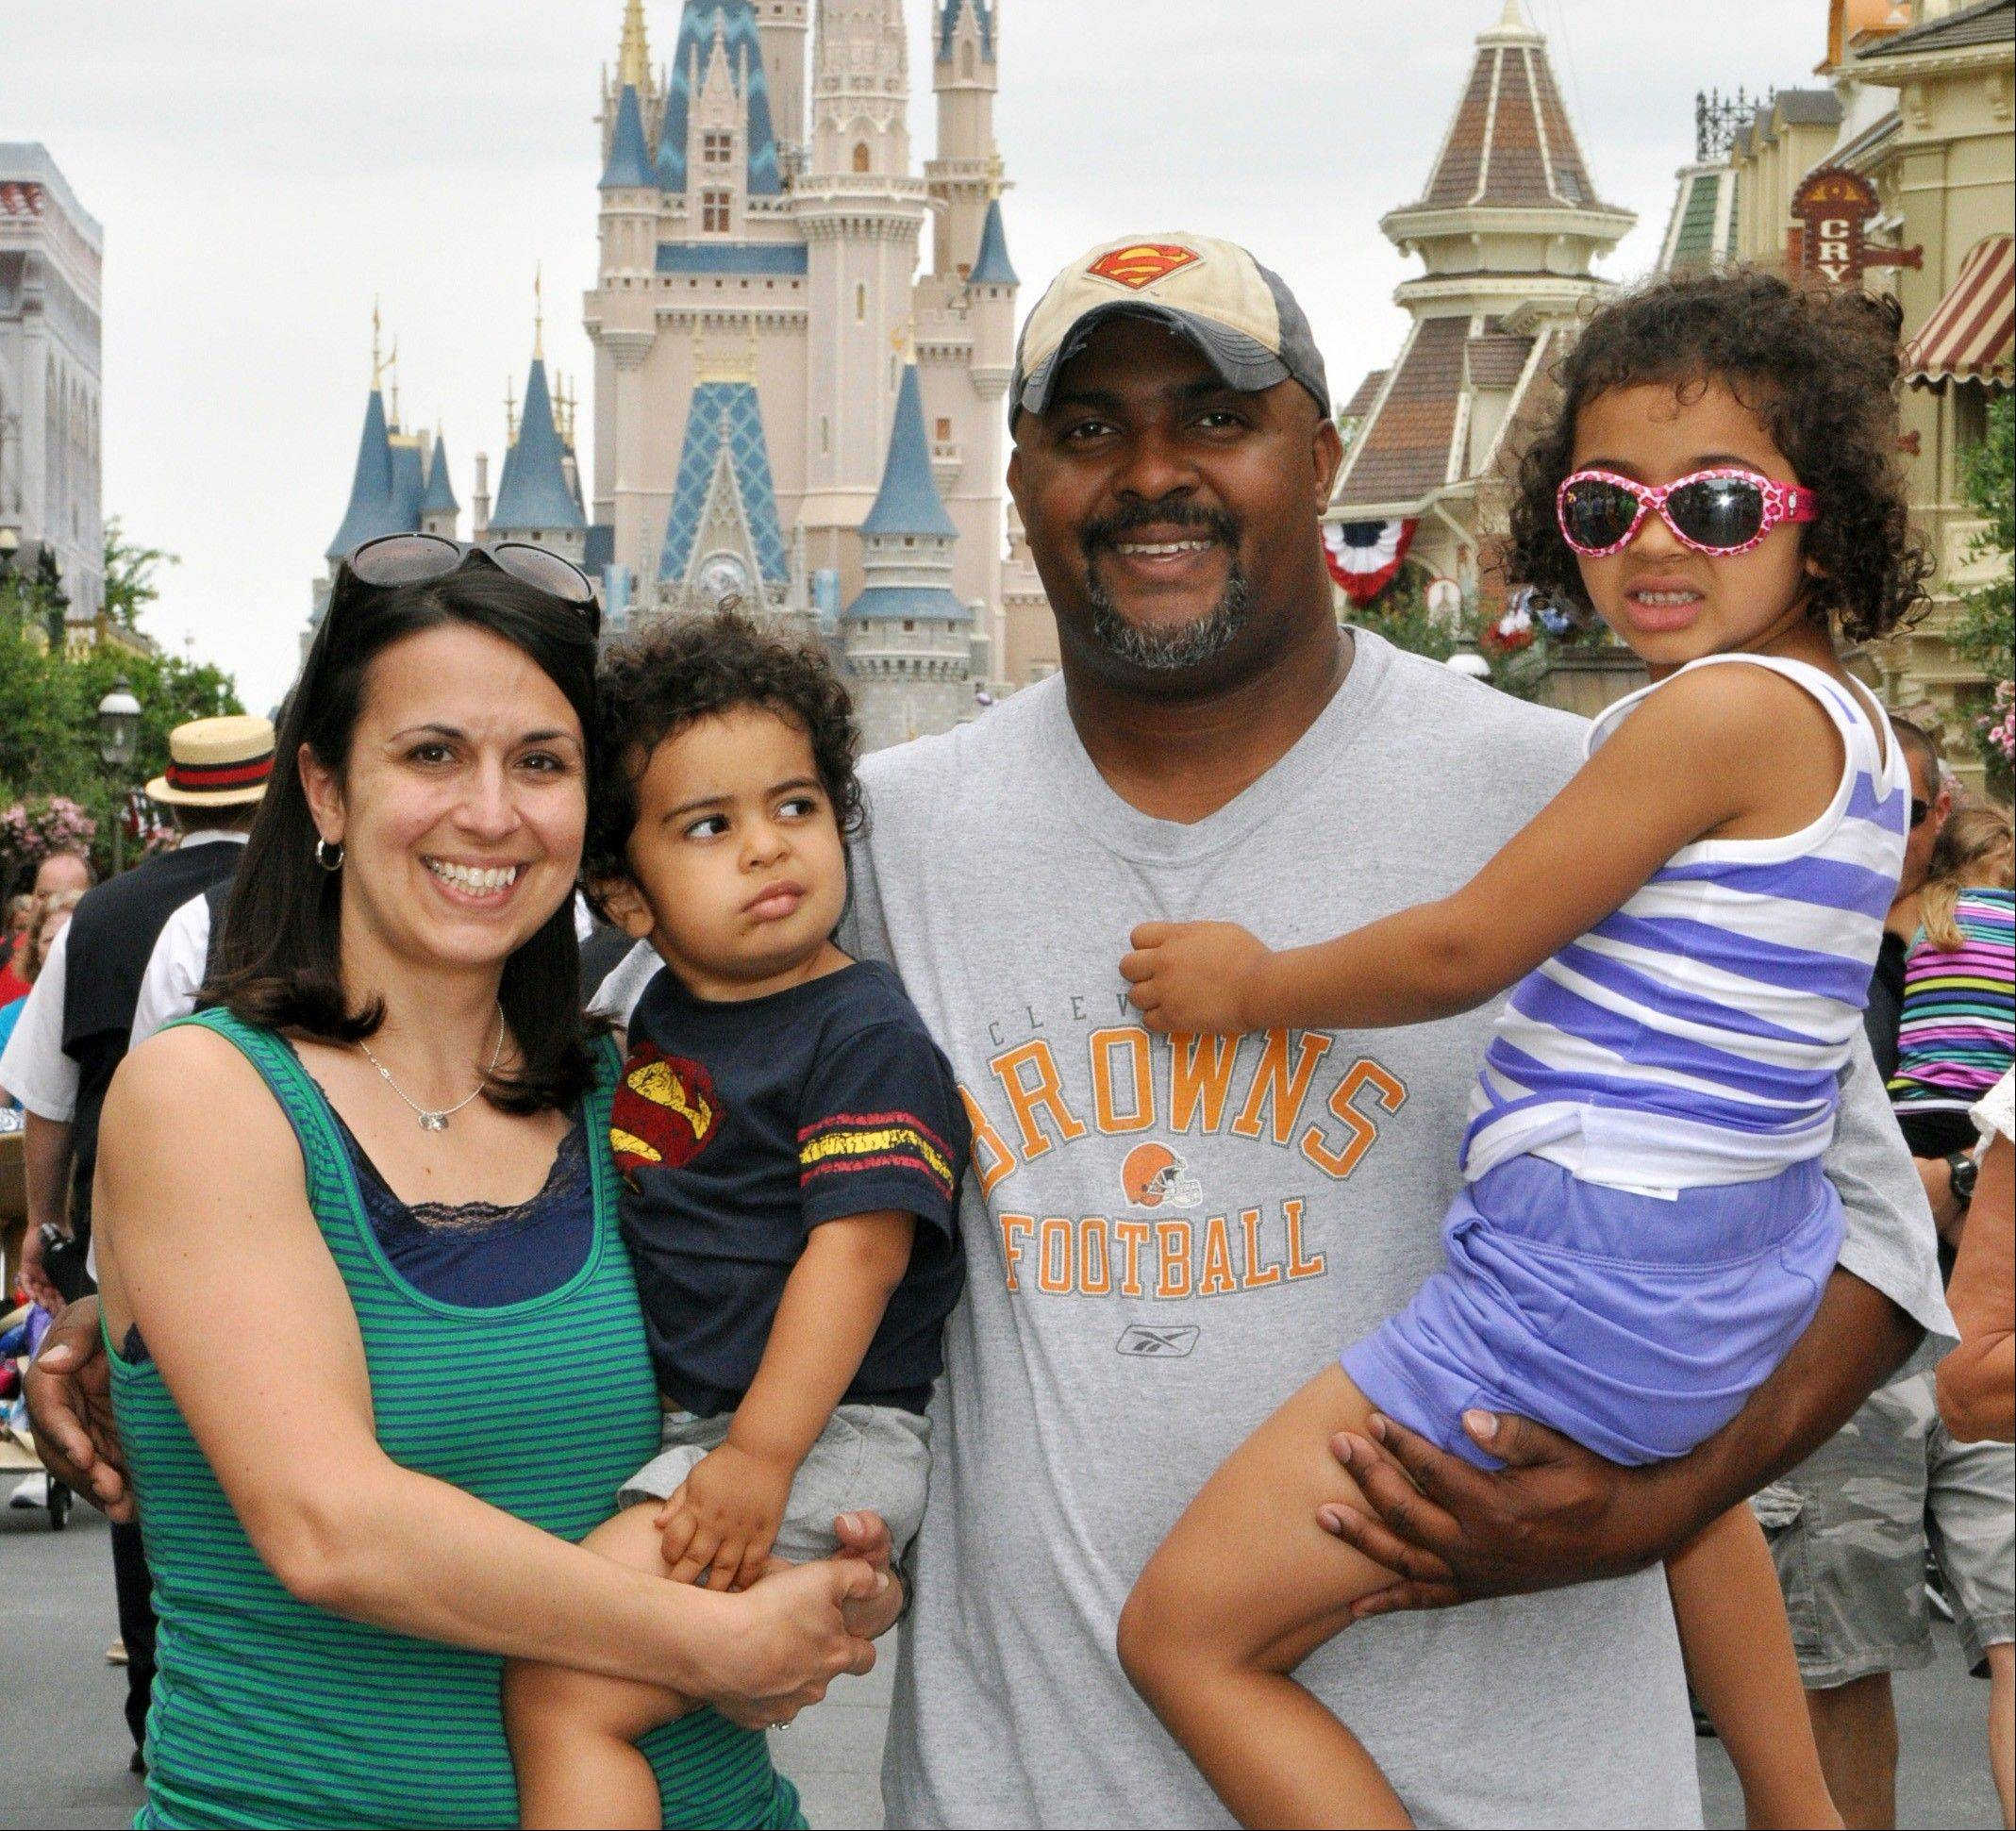 Creed Anthony of Indianapolis spends time with his daughter Sophie, 5, son Isaac, 2, and wife Amal, on a visit to Disney World�s Magic Kingdom in Lake Buena Vista, Fla. Anthony is an example of a new generation of hands-on dads who don�t just change the occasional diaper but who view �parenting as a partnership,� as he put it.